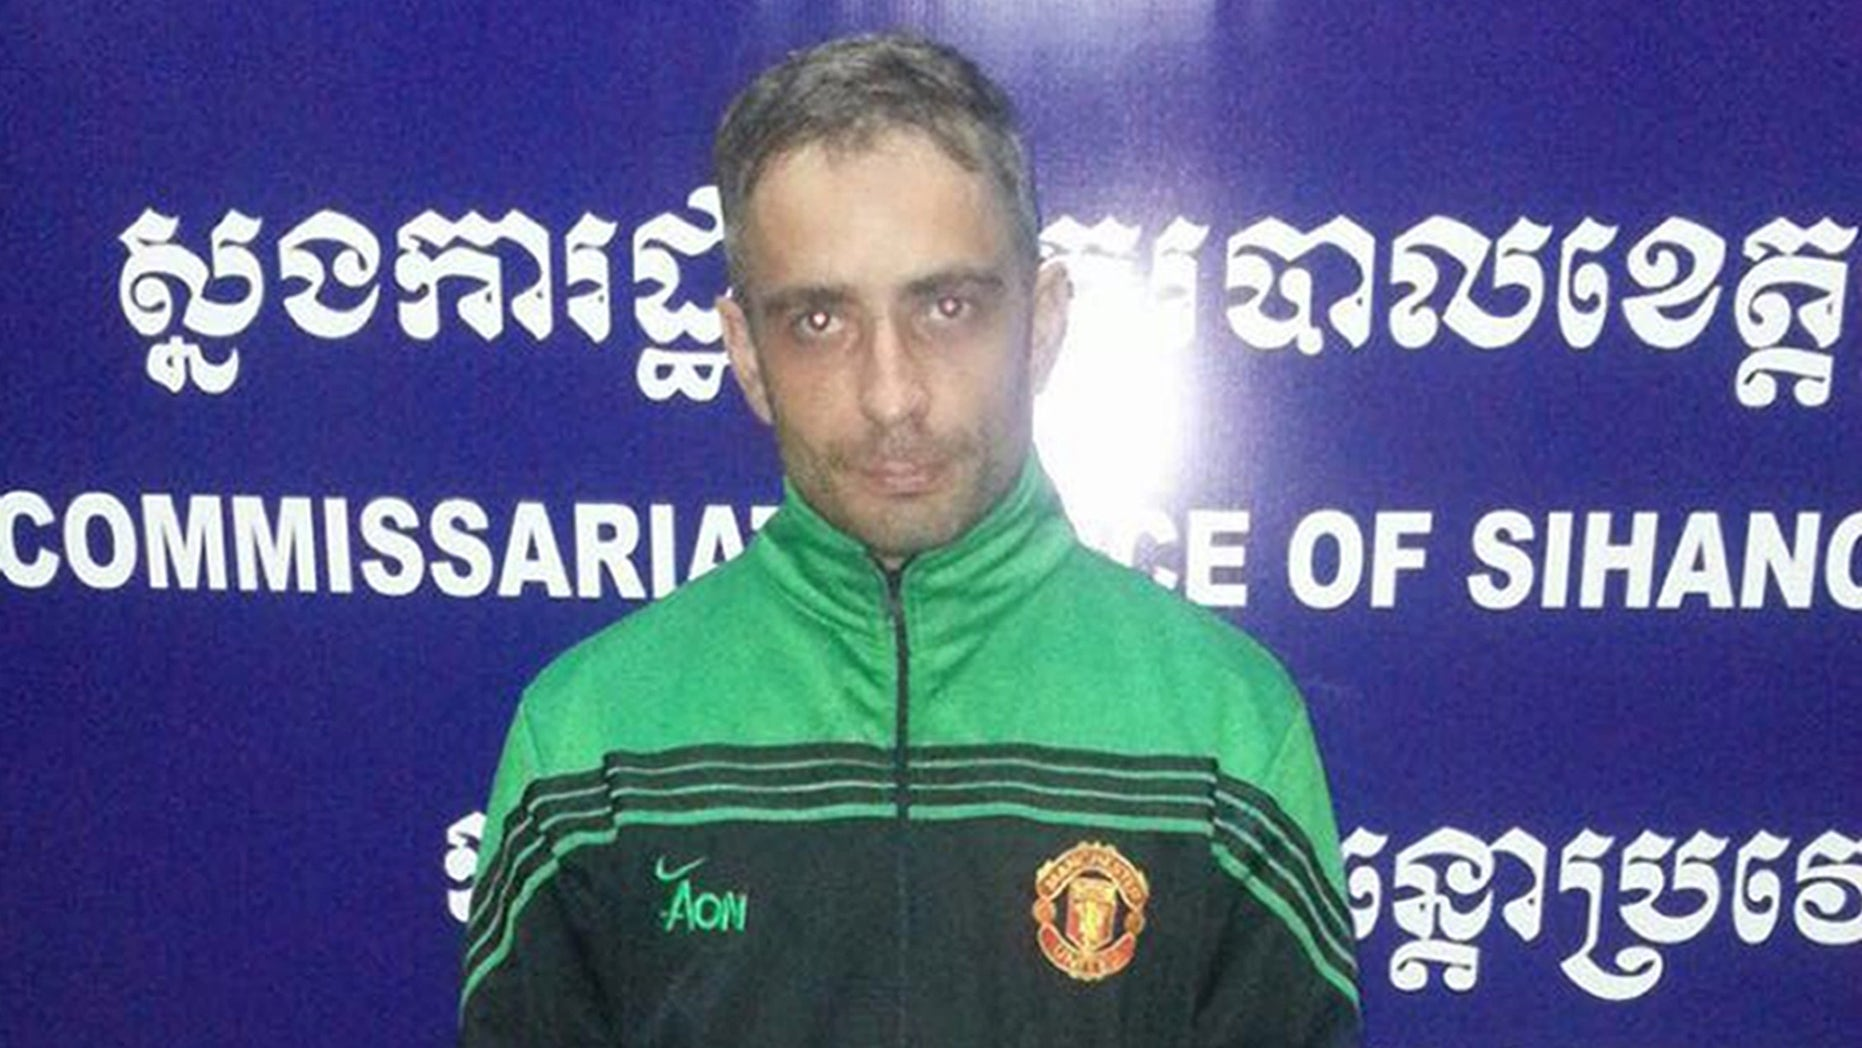 Artur Segarra Princep,  suspected of murder, at the Sihanoukville police station, southwest of Phnom Penh, Cambodia.